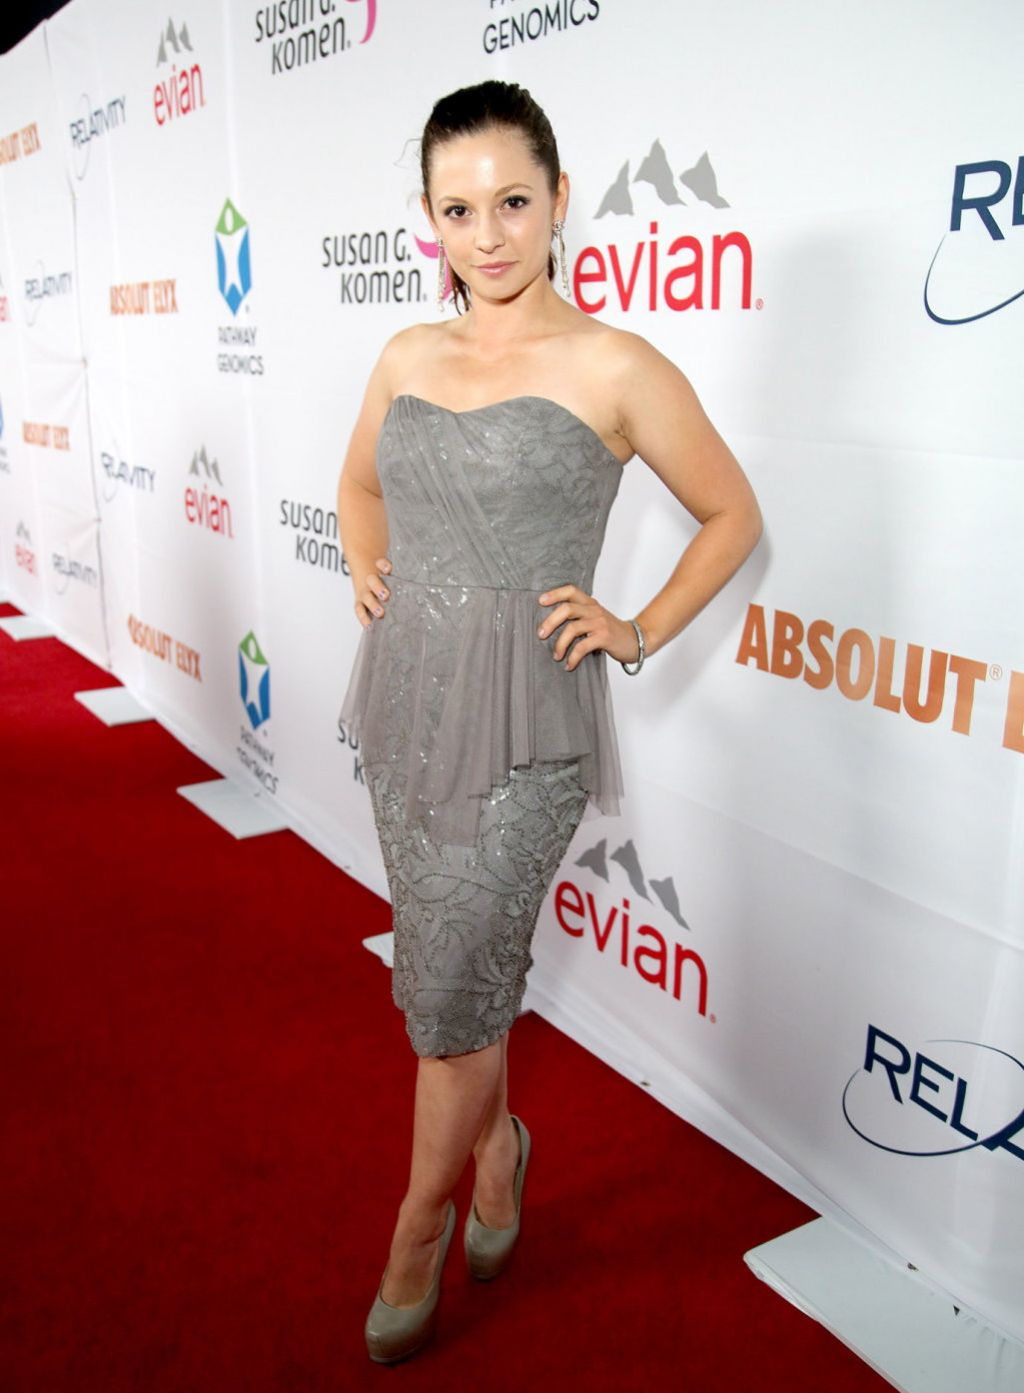 Mackenzie Rosman - Pathway To The Cure Fundraiser Benefit in Santa Monica - June 2014